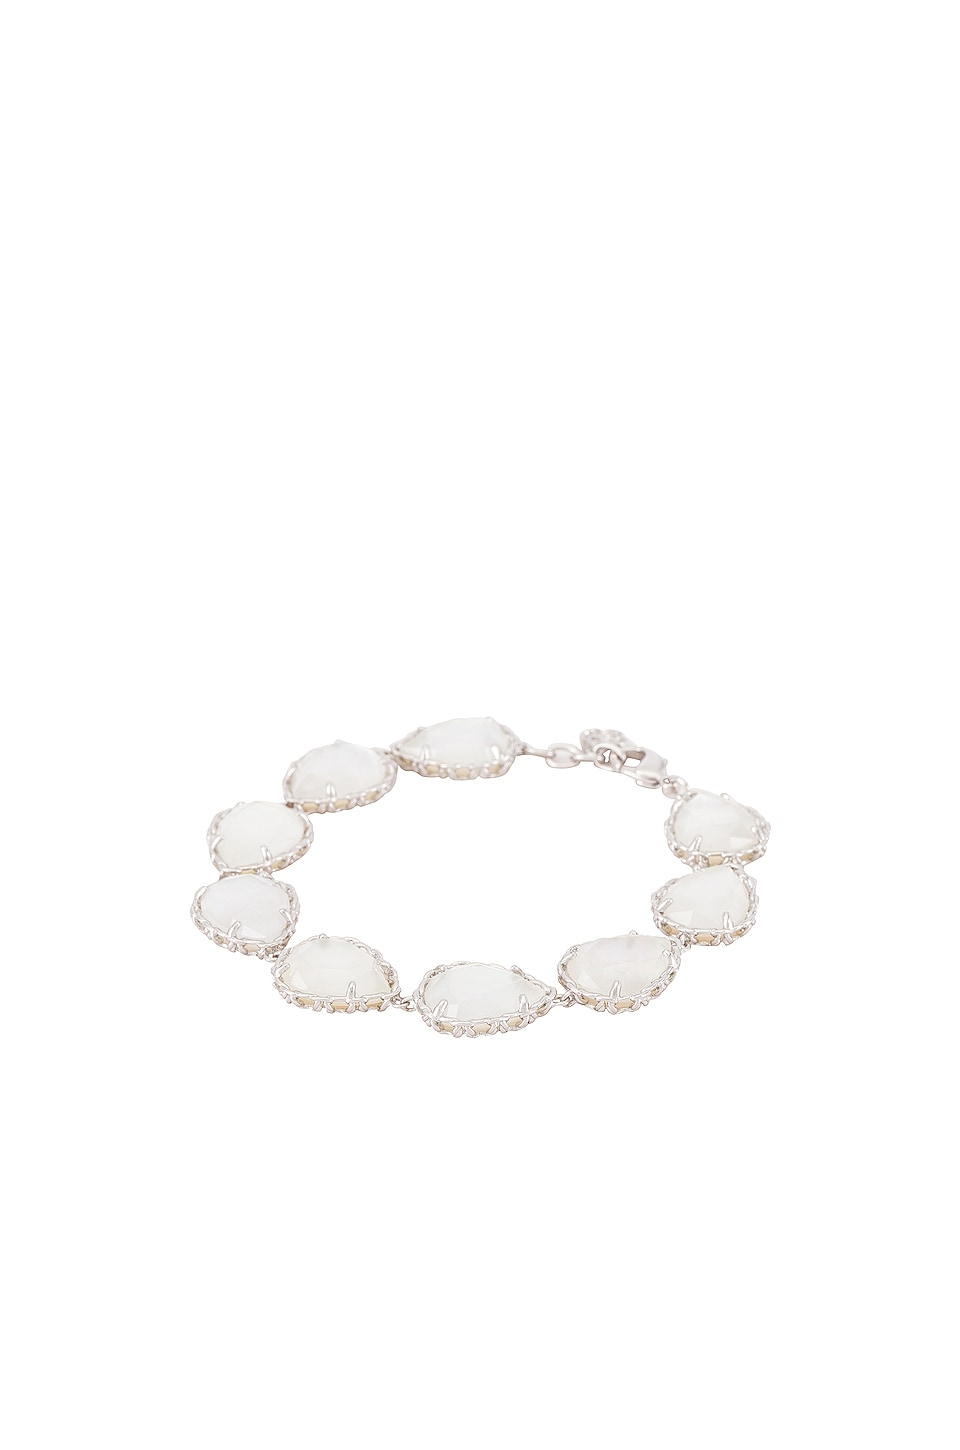 Kendra Scott Kenzie Link And Chain Bracelet in Ivory Mother Of Pearl